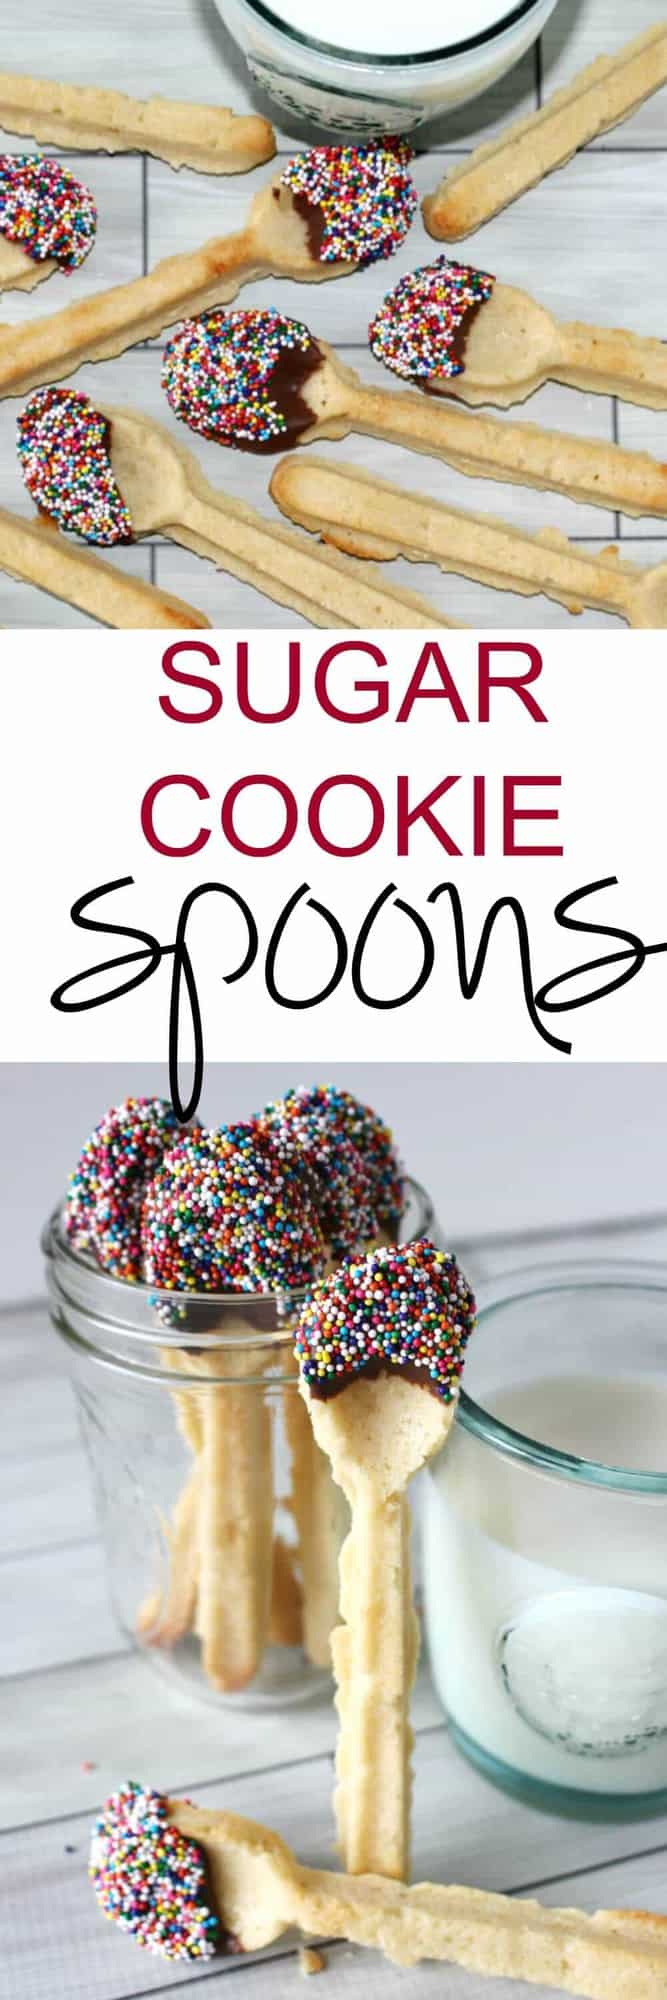 Sugar Cookie Spoons - Taking milk and cookies to a whole other level Princess Pinky Girl